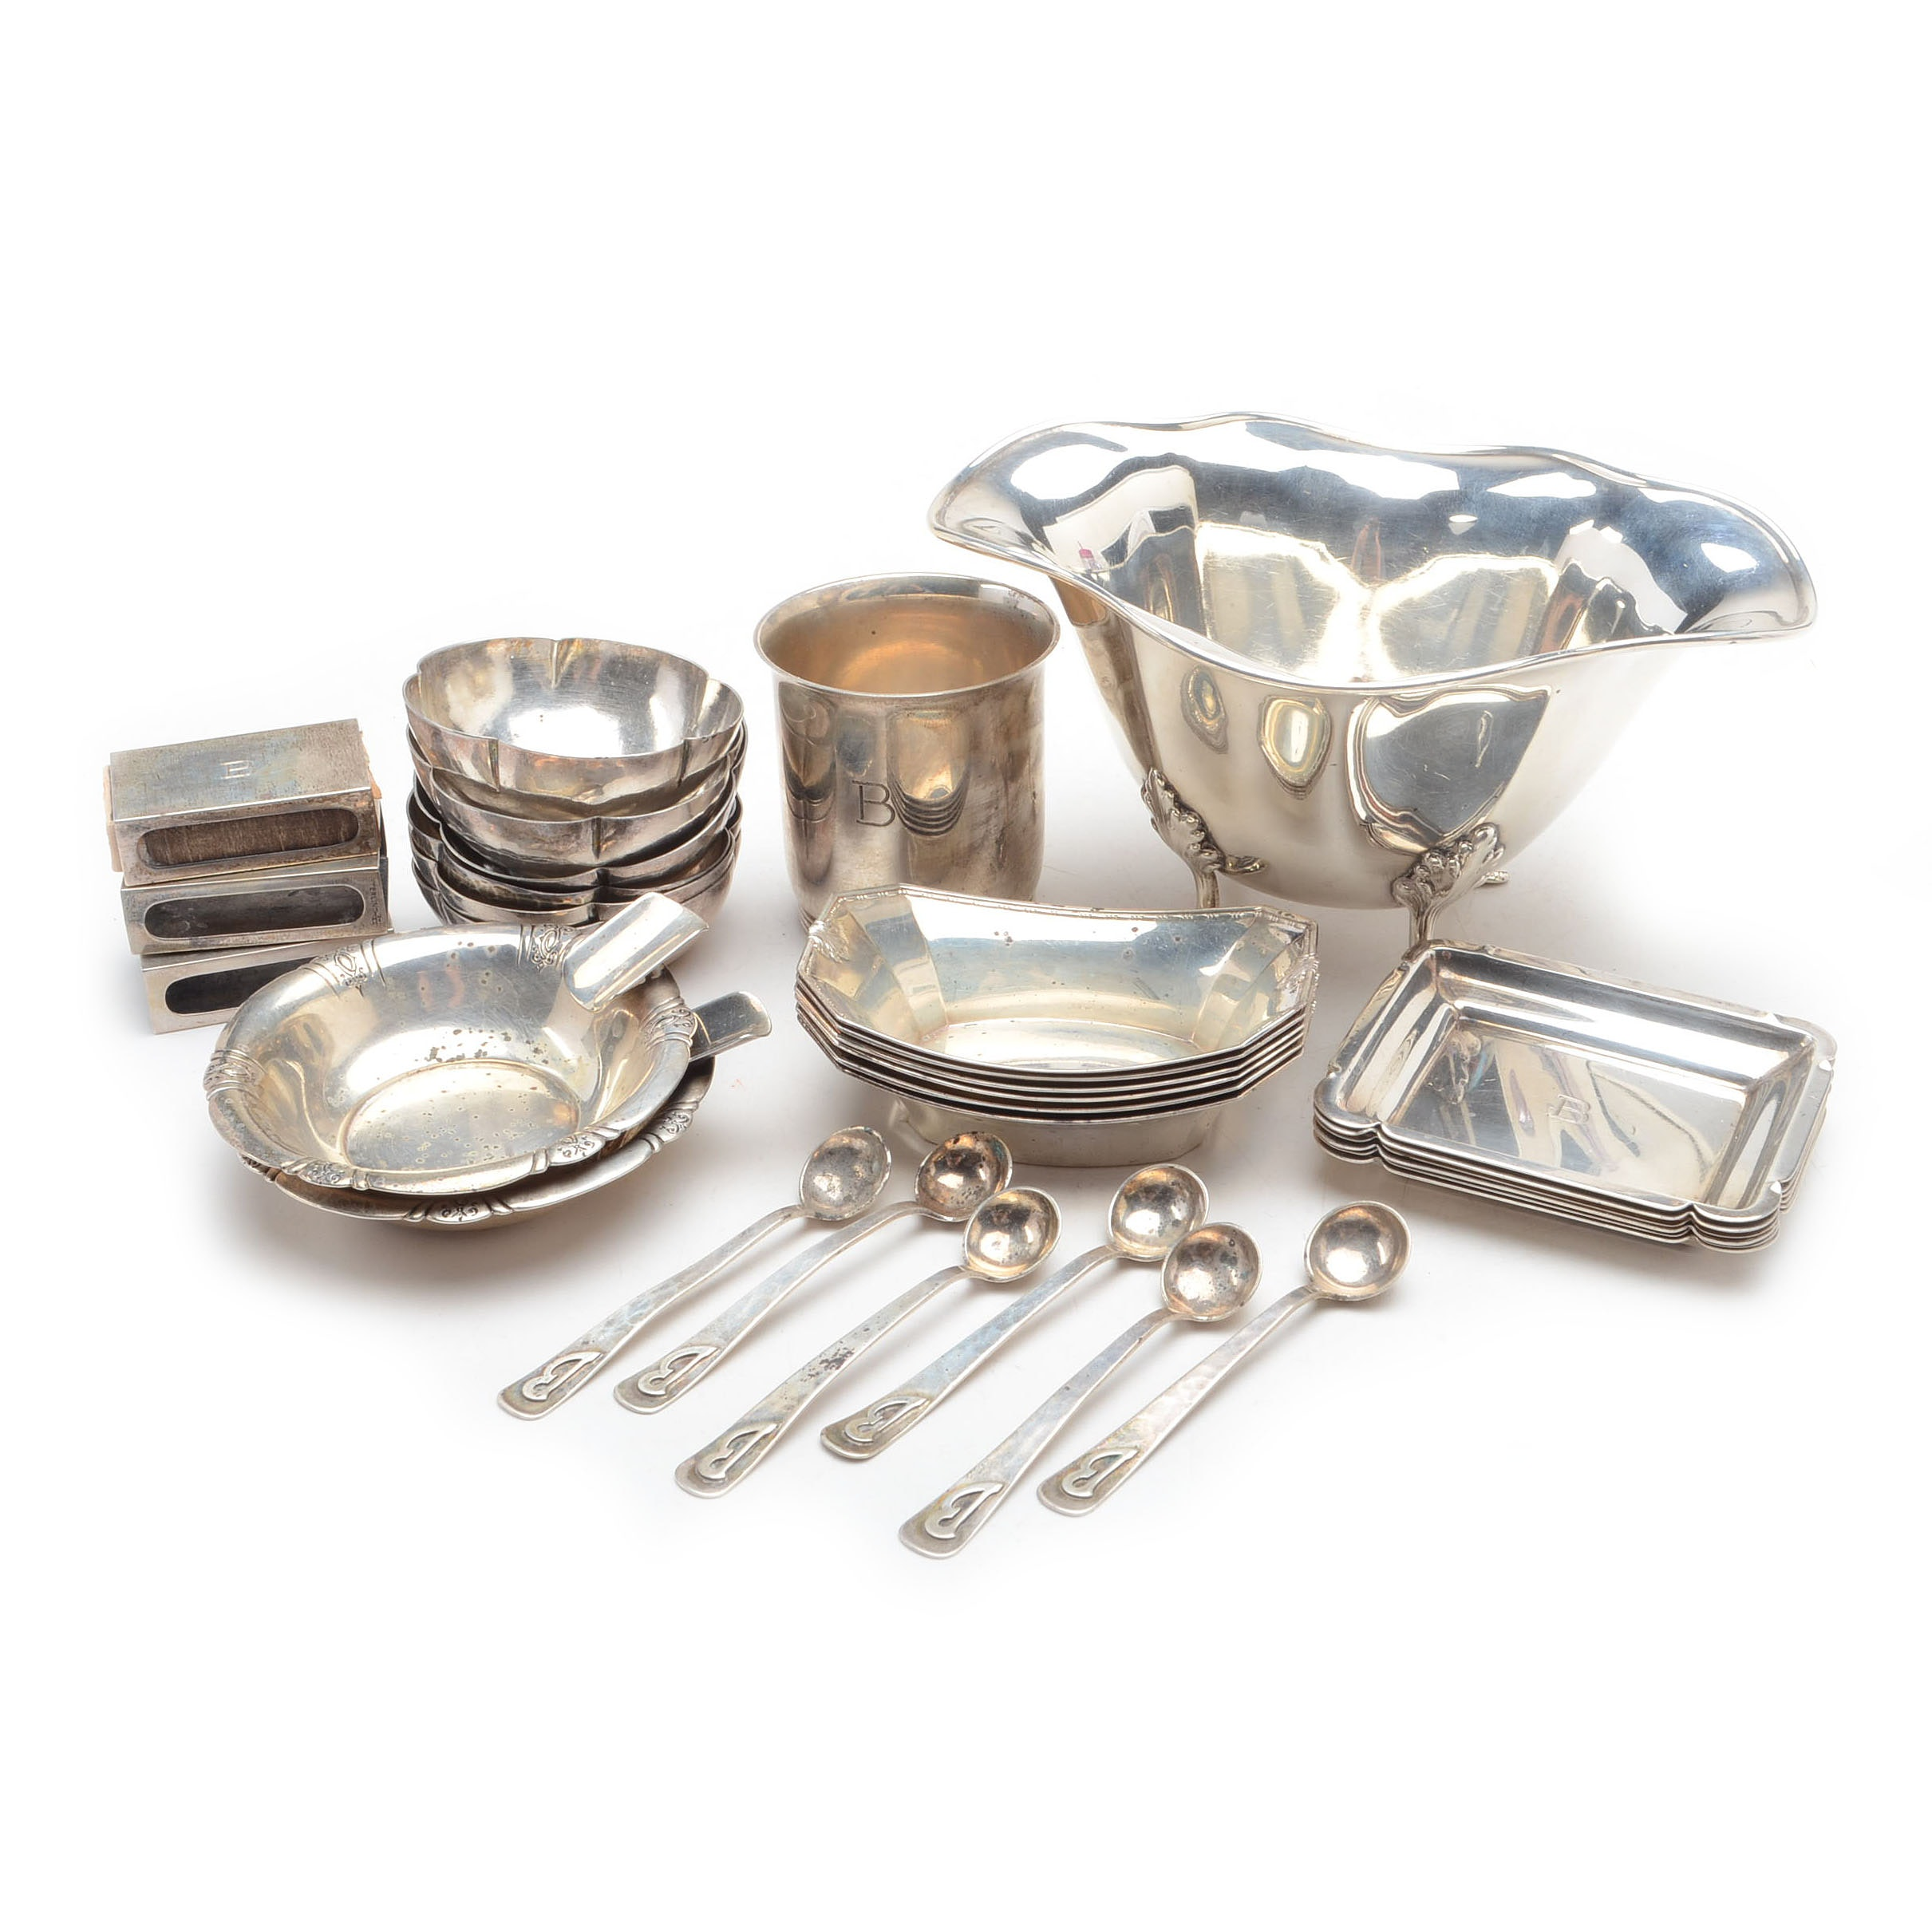 S. Kirk & Son, Watson and Other Sterling Silver Tableware